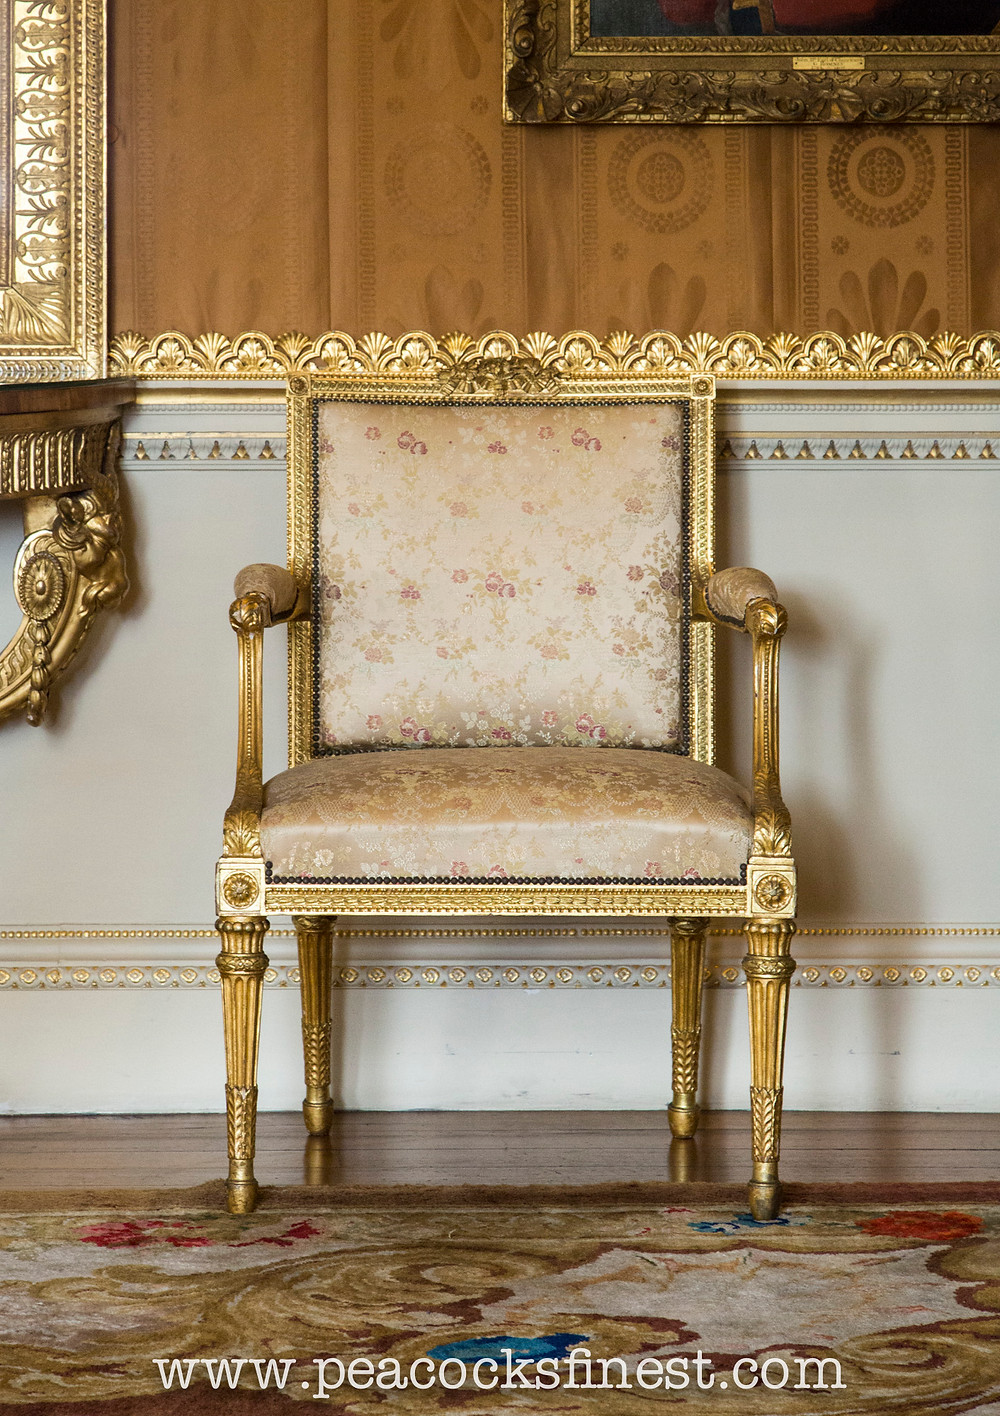 Harewood House, The Cinnamon Drawing Room. A fine giltwood open armchair, one of a suite of exquisite seat furniture in the Neoclassical taste.